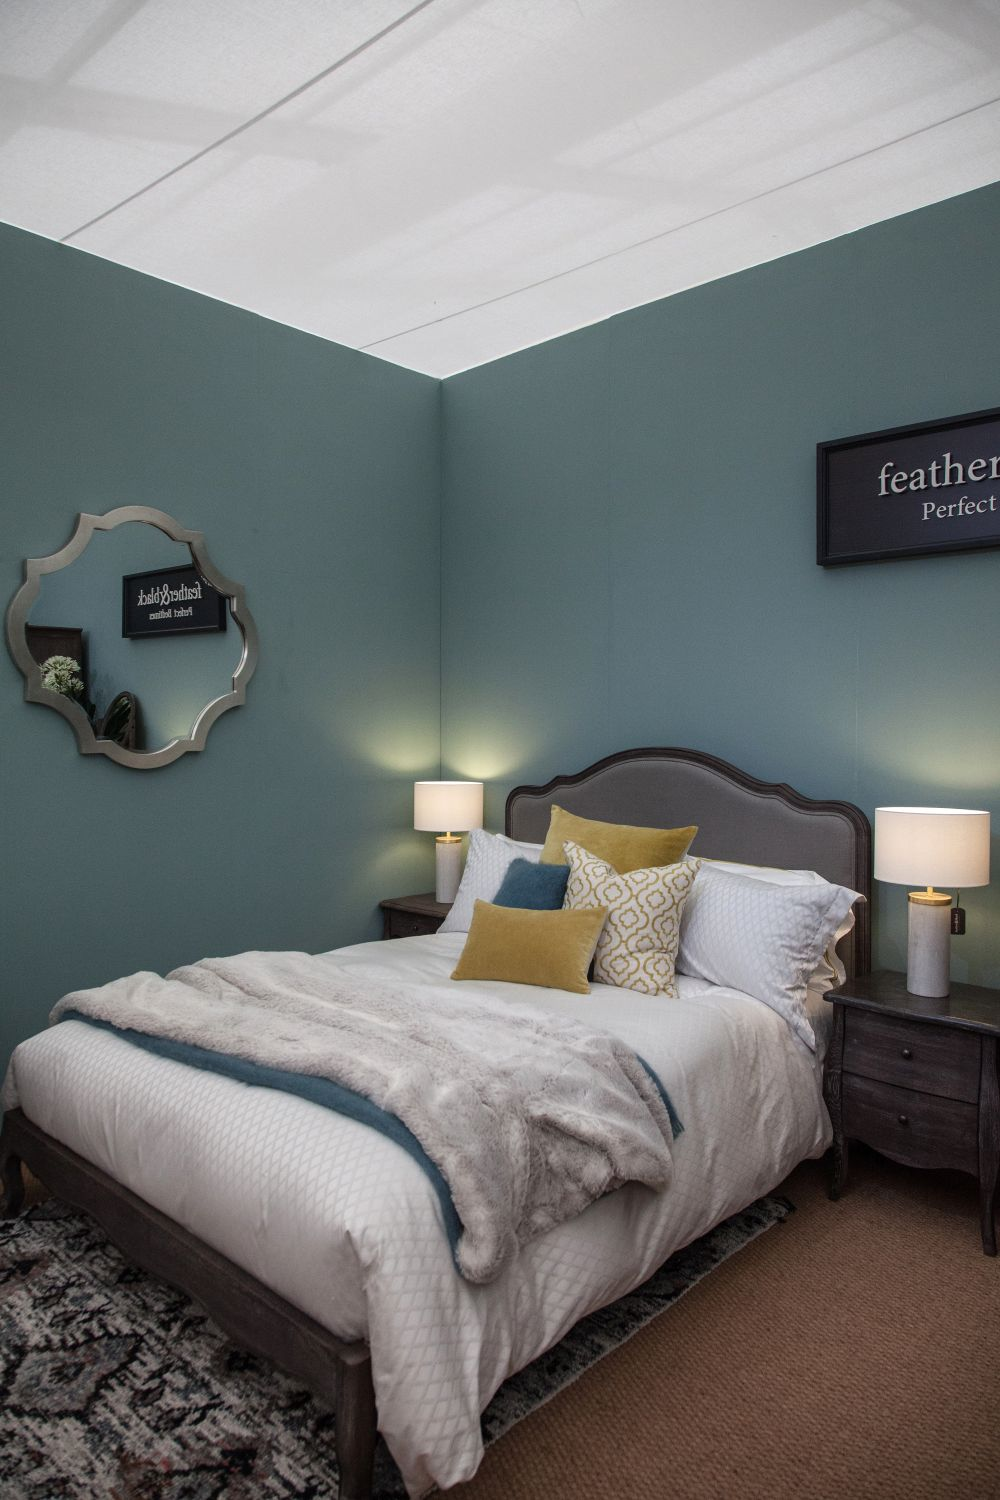 Blue is a suitable color for bedrooms, given its calming and relaxing nature